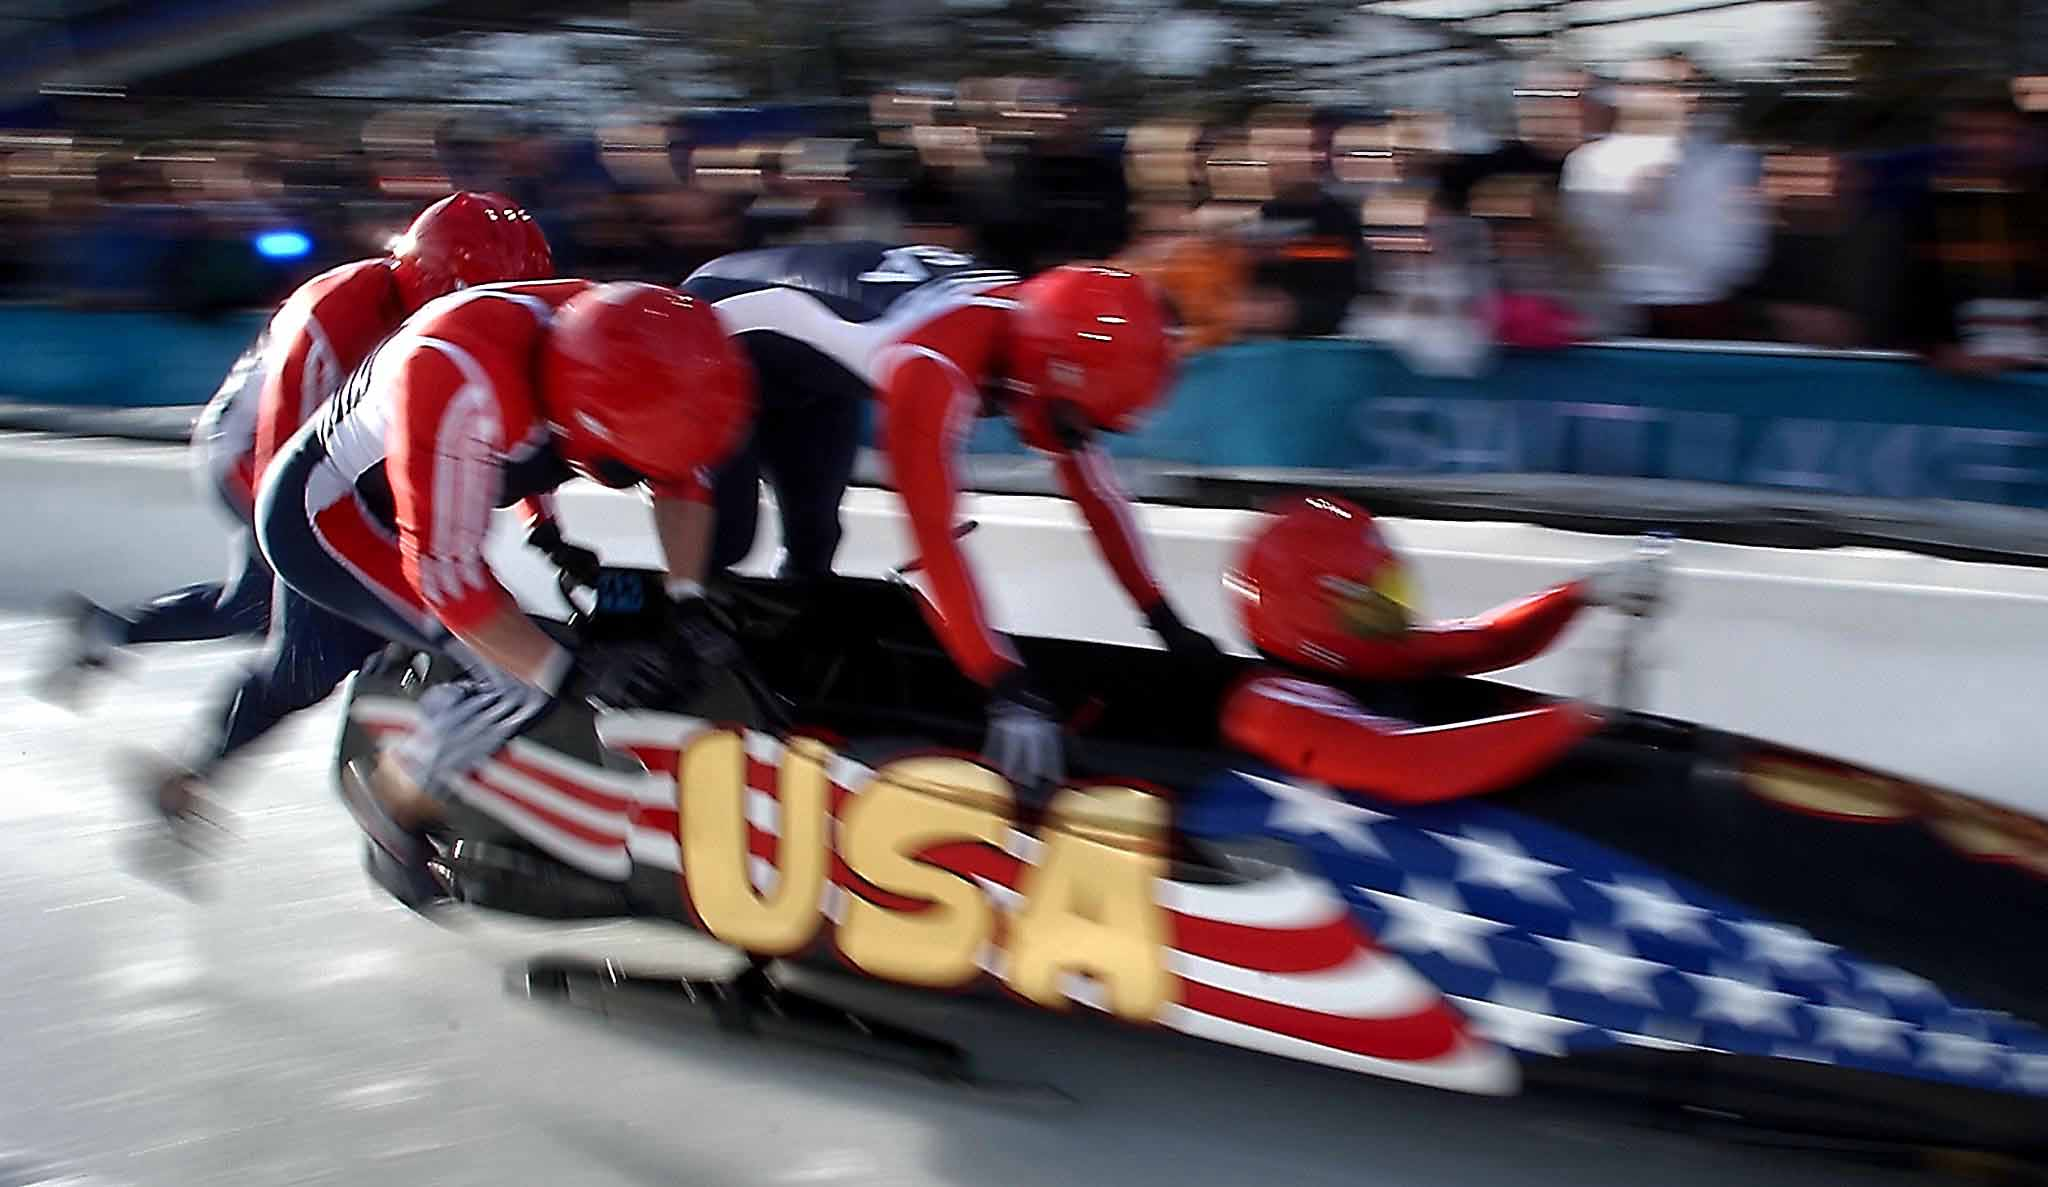 Bobsleigh at the 2002 Winter Olympics